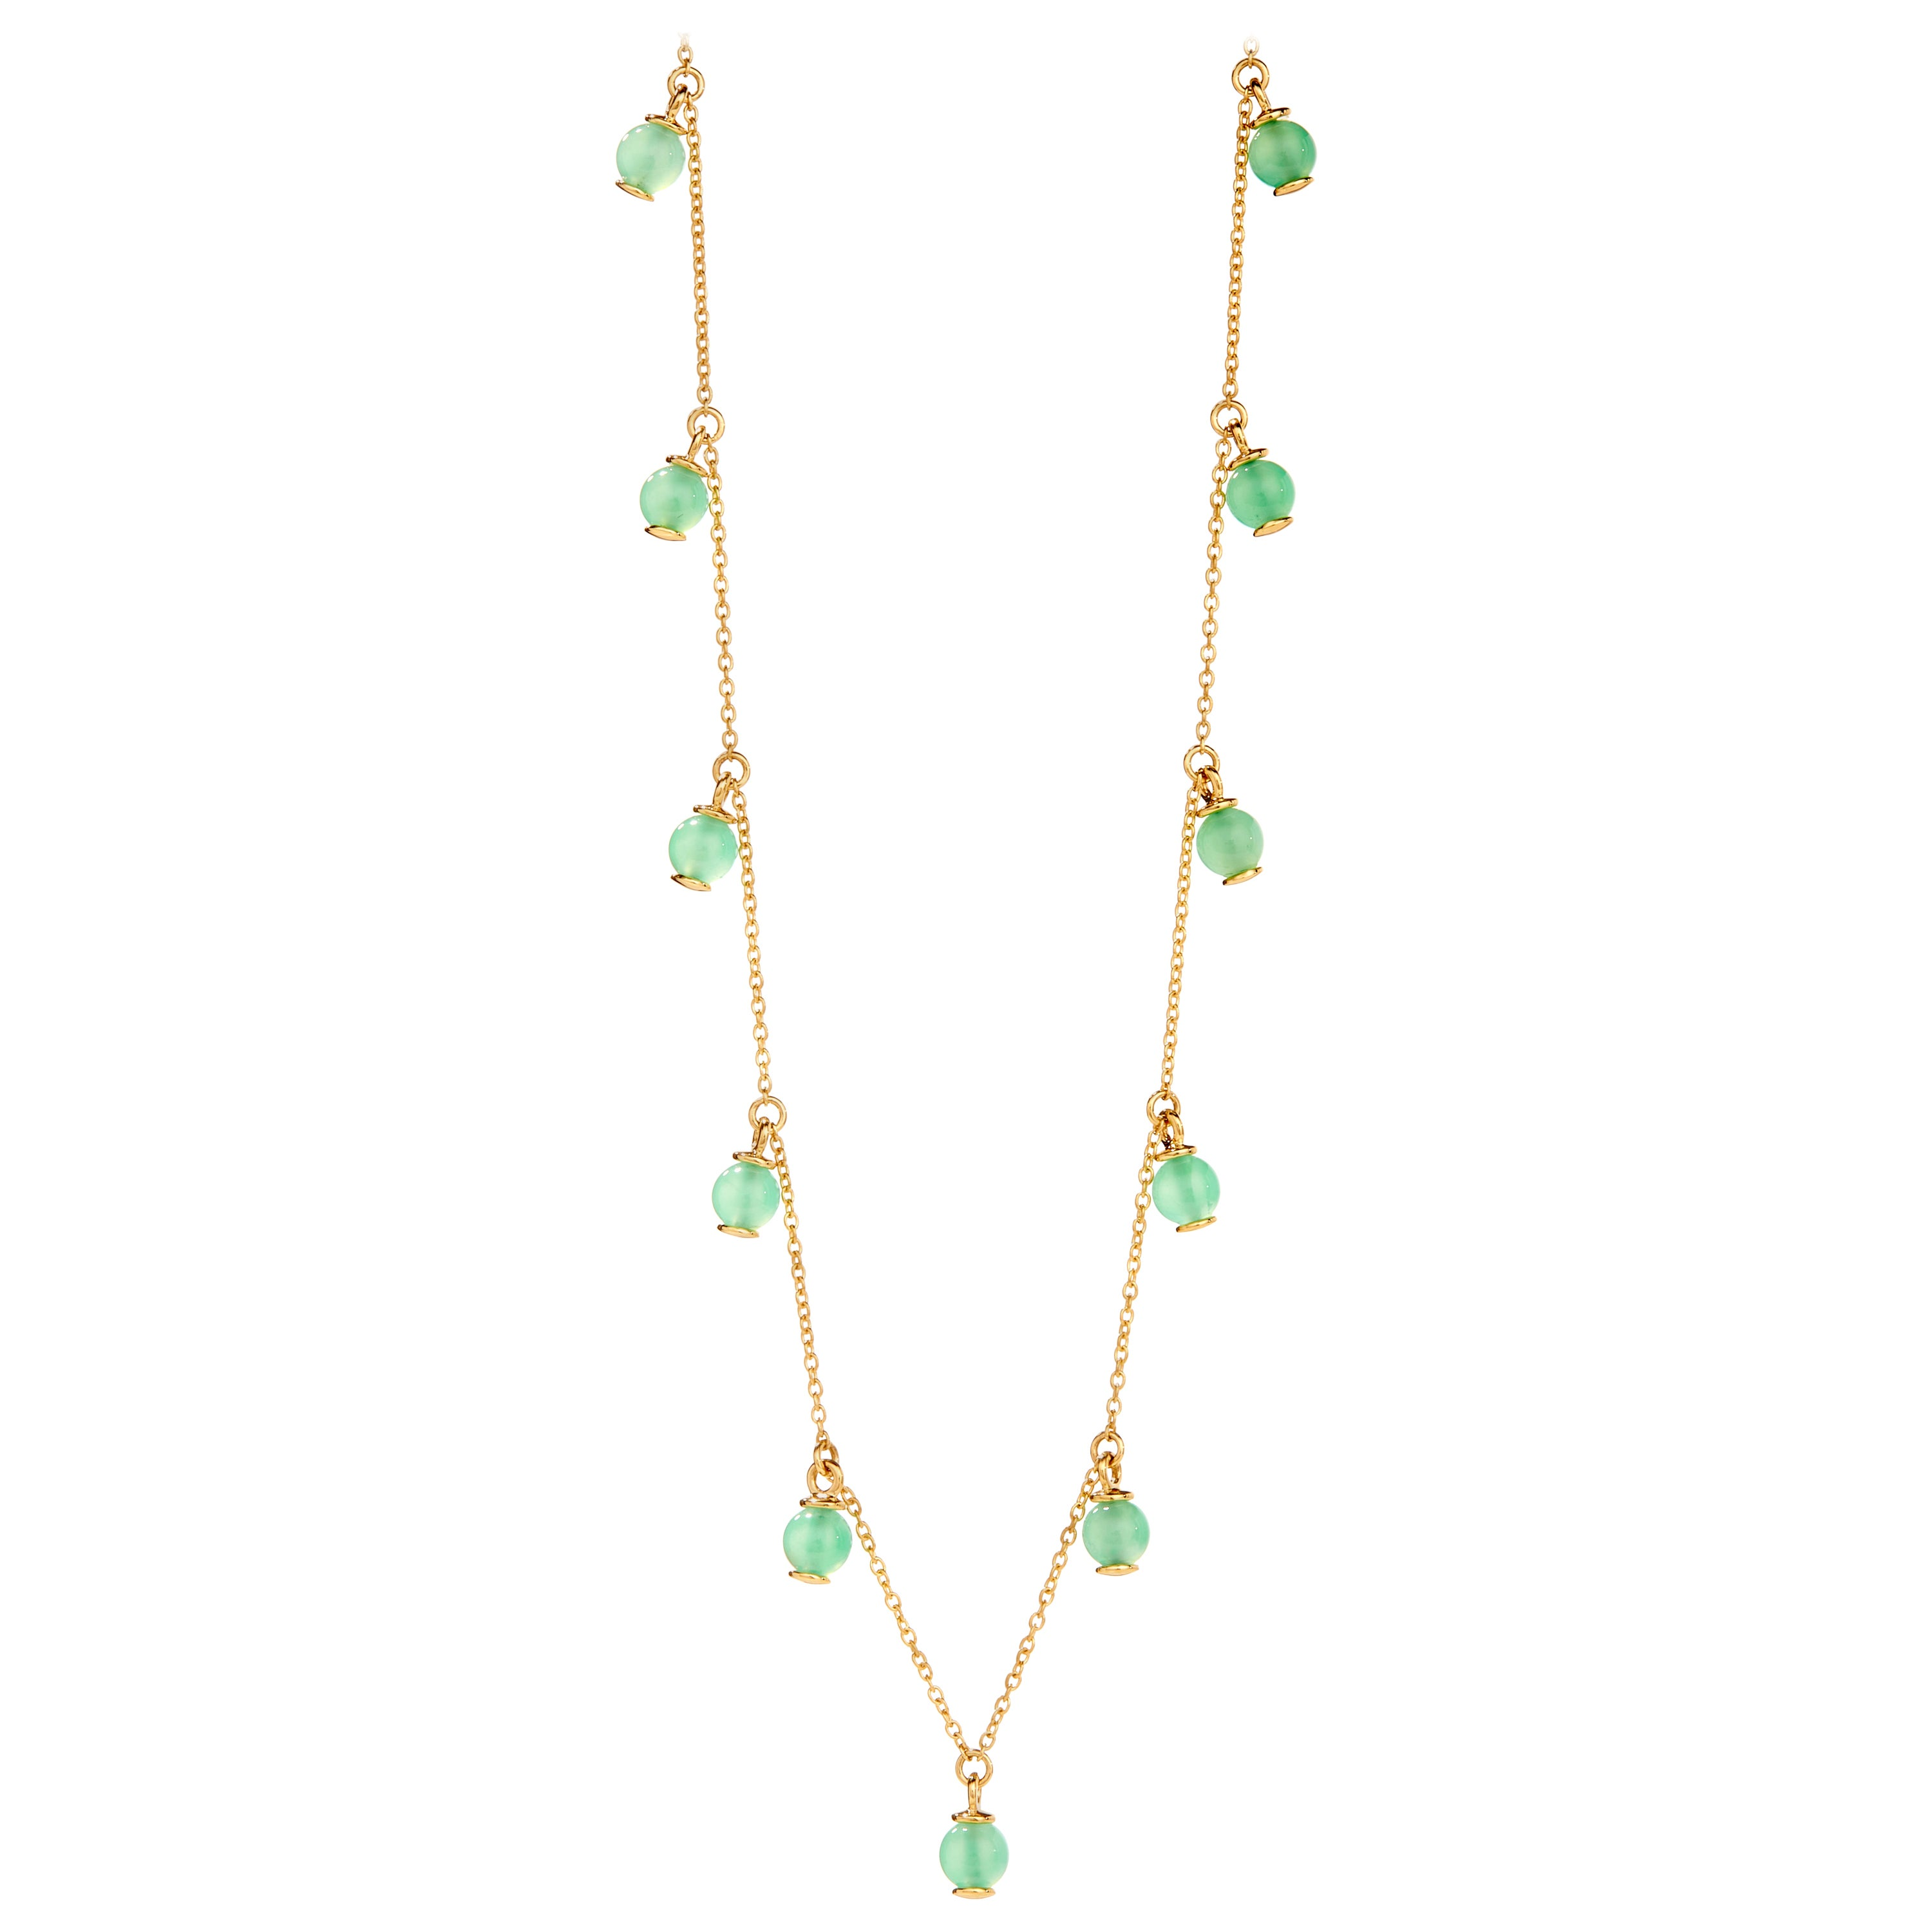 Syna Chrysoprase Yellow Gold Bead Necklace